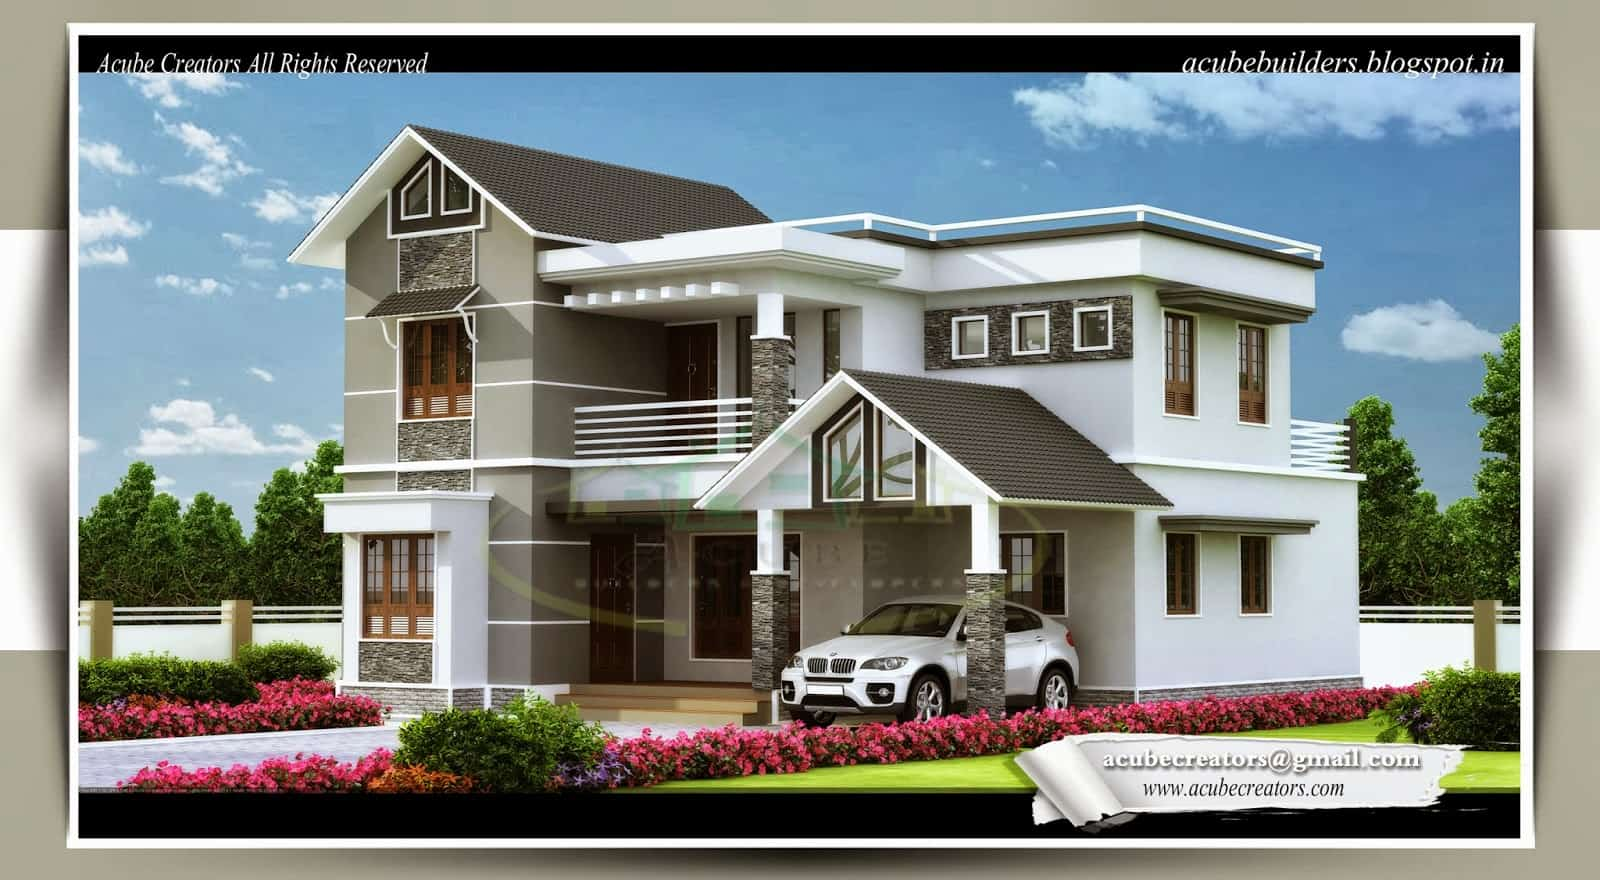 Kerala Home design for 4 Bedroom Villa at 1983 sq.ft